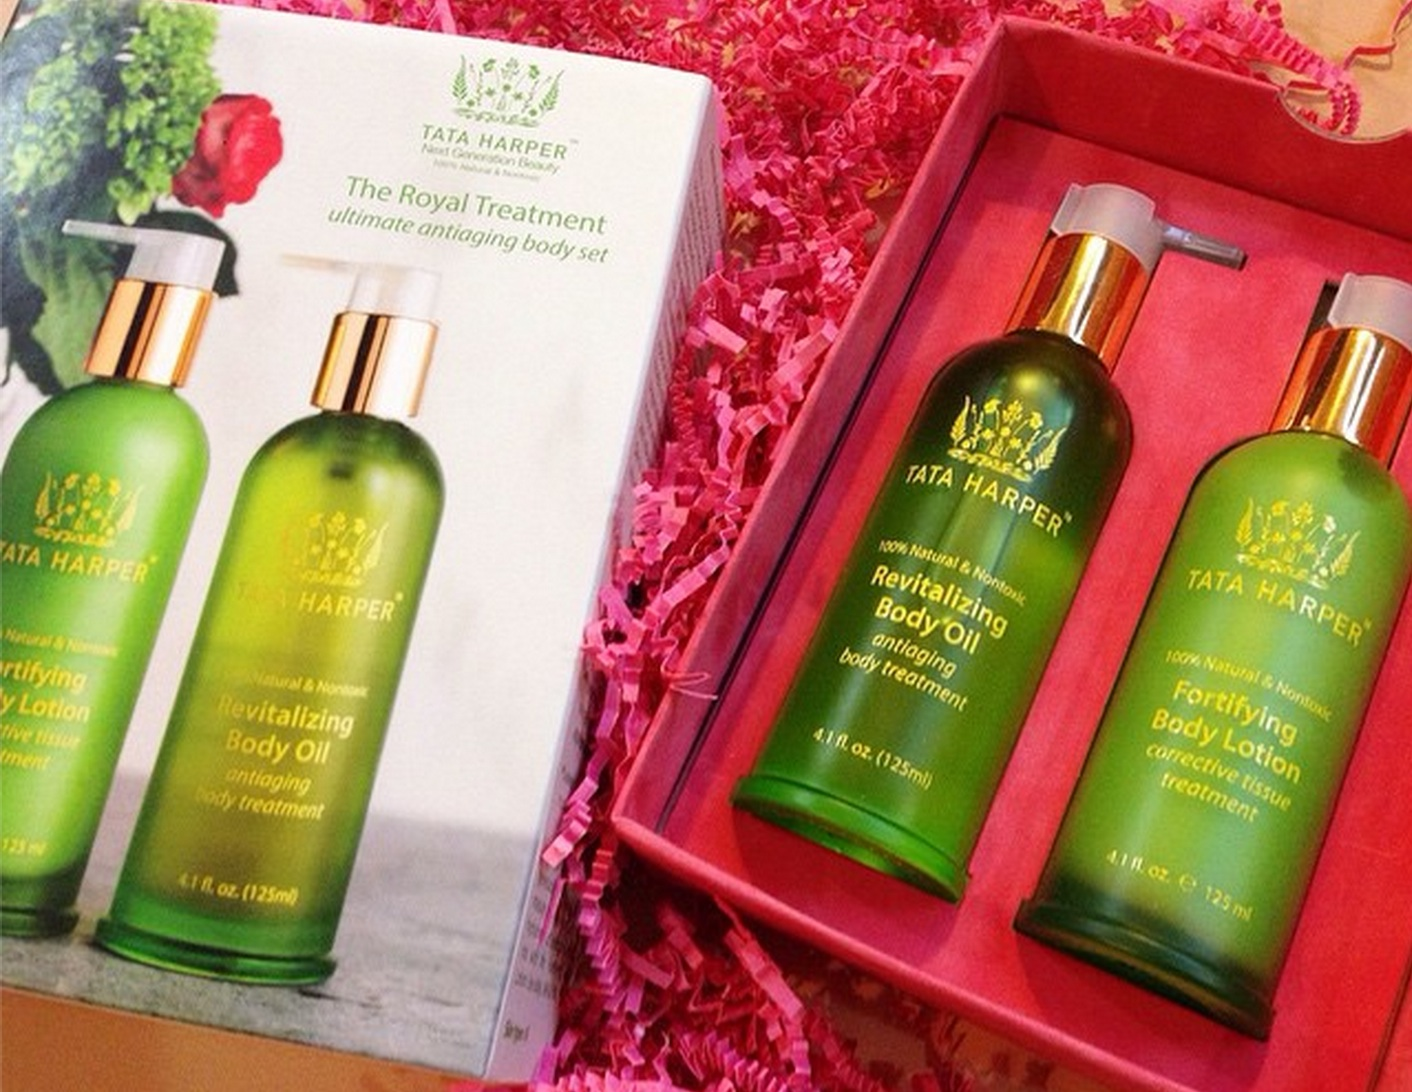 Tata Harper Revitalizing Body Oil: Just, wow.